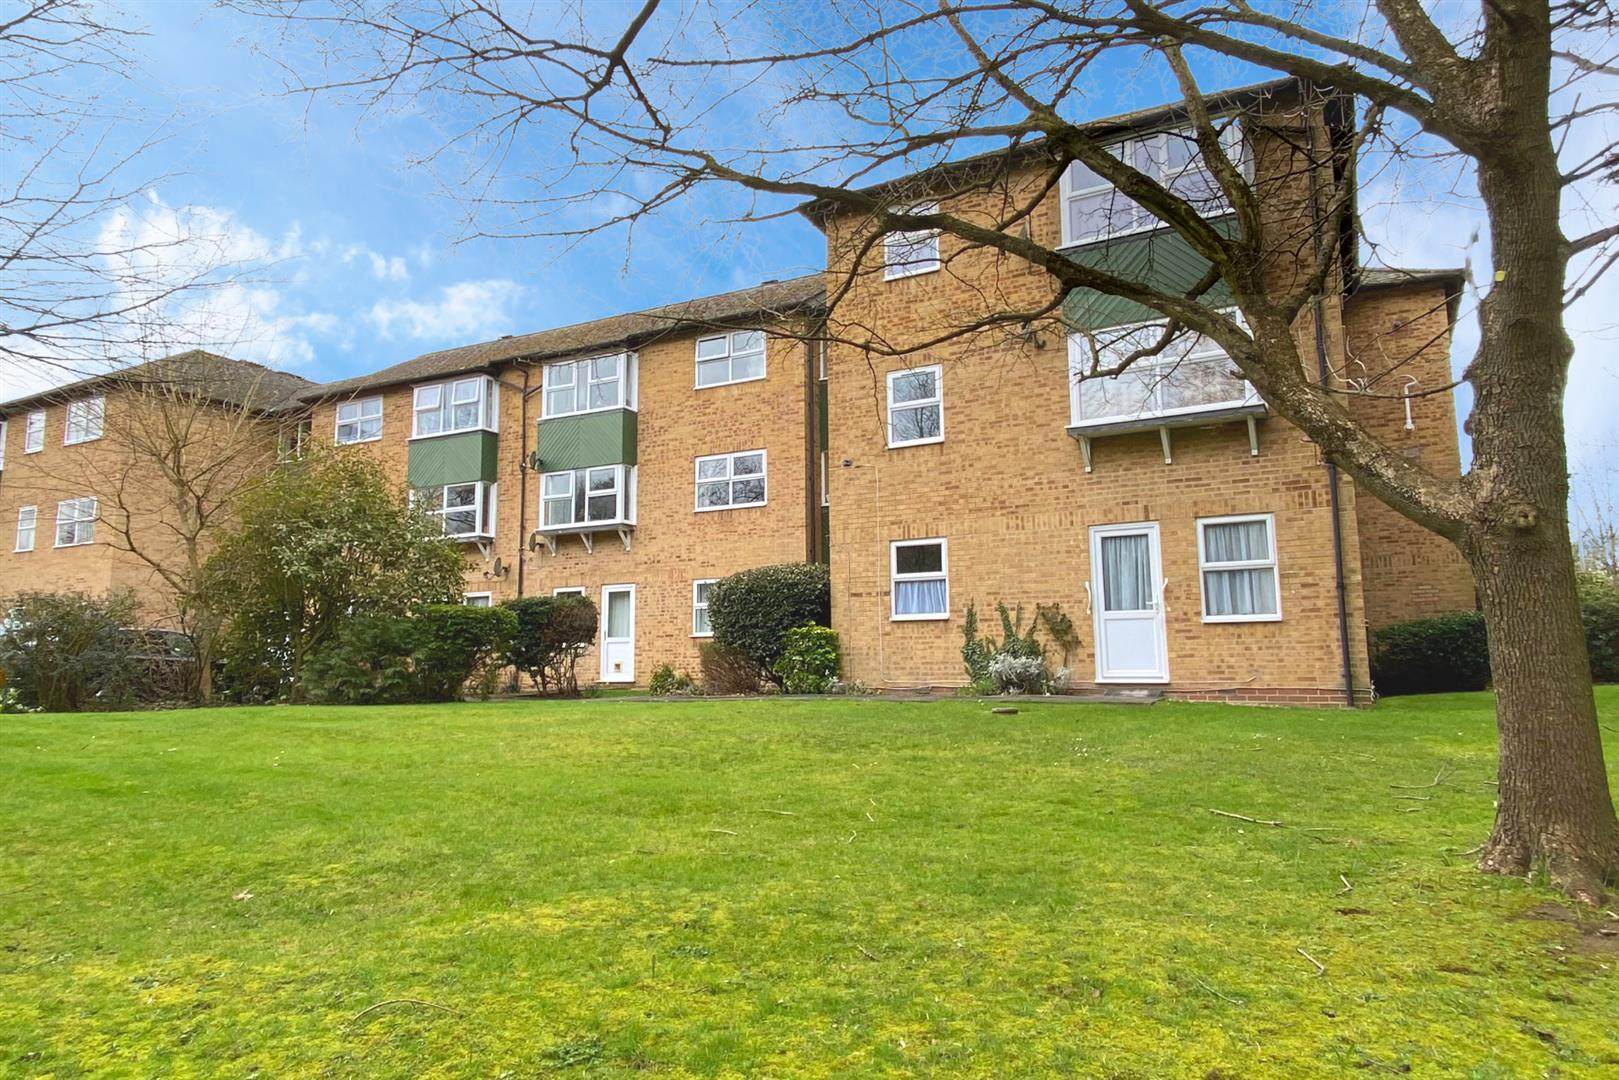 1 bed apartment for sale, RG41